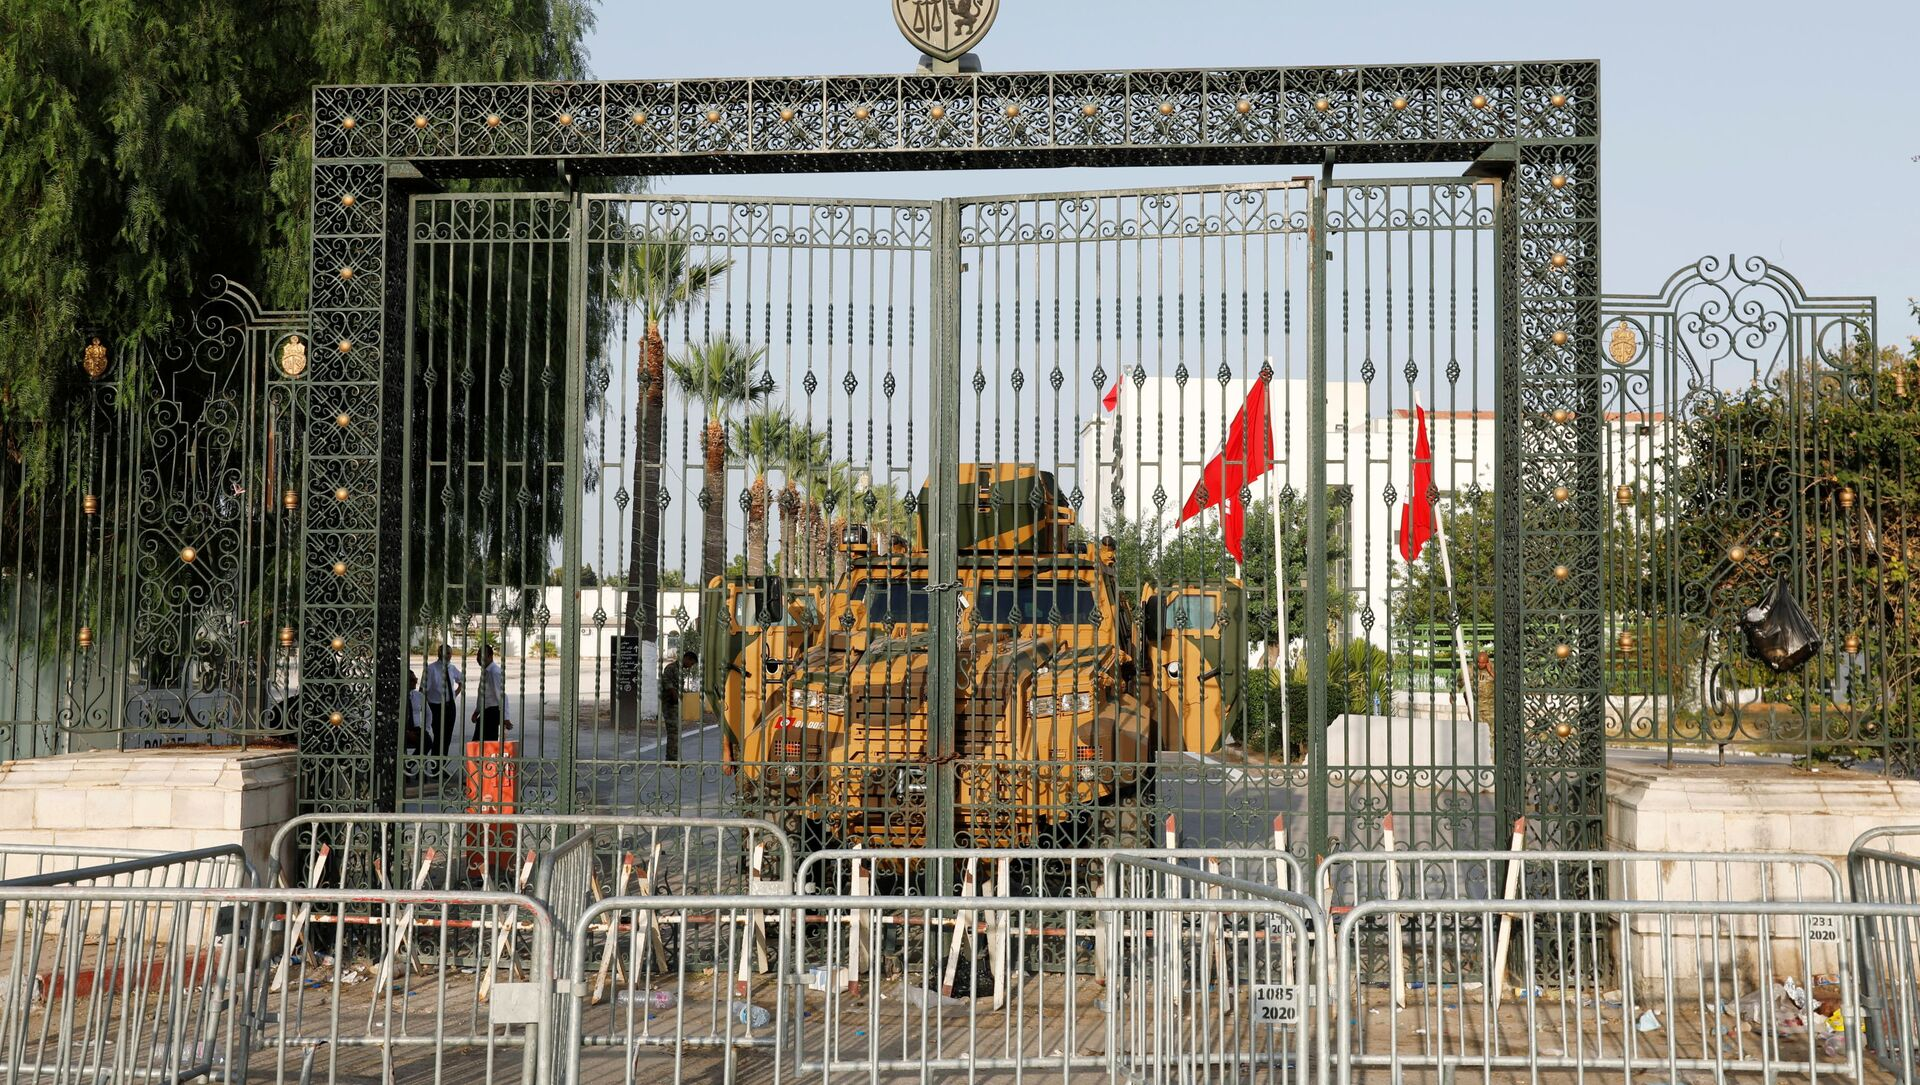 A military vehicle is pictured in front of the parliament building in Tunis, Tunisia  July 26, 2021. - Sputnik International, 1920, 26.07.2021